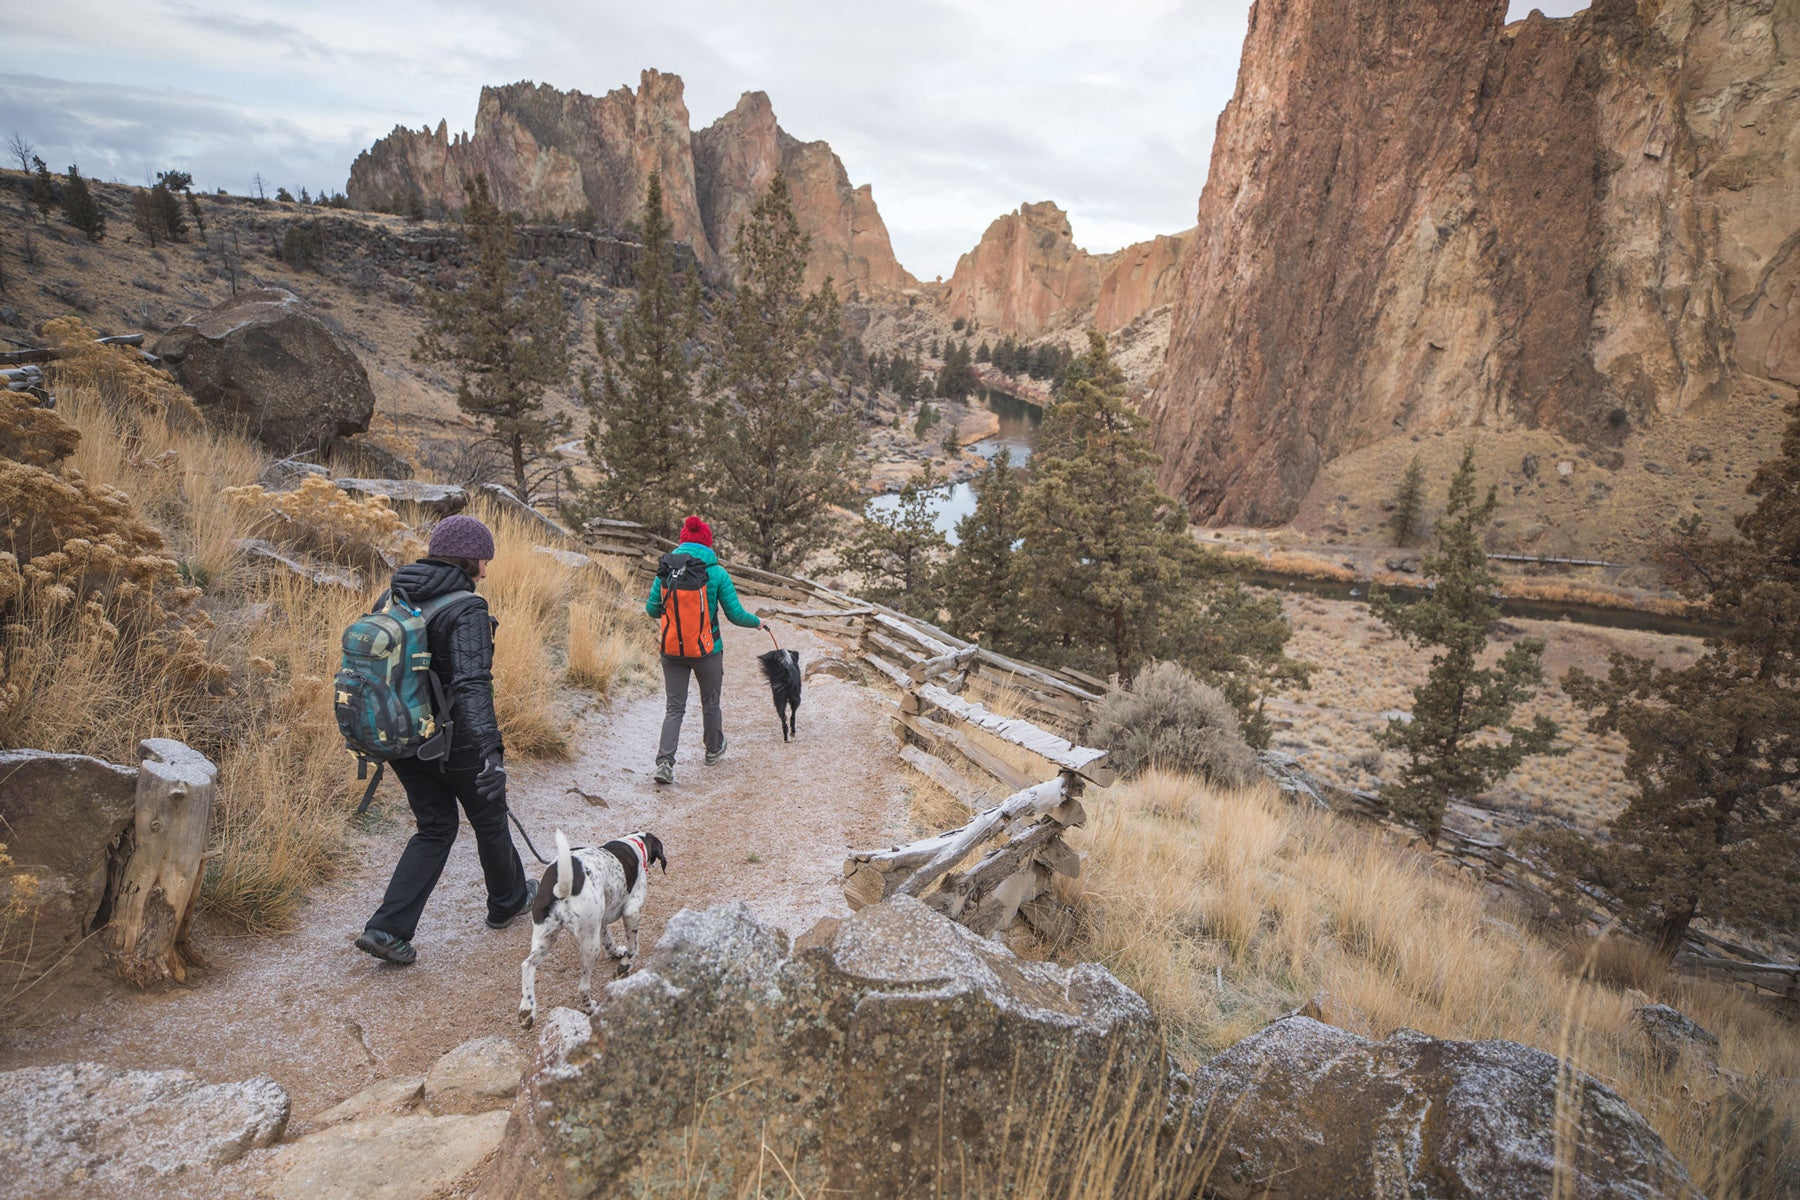 Two climbers with dogs on knot-a-leashes descend on the trail at Smith.